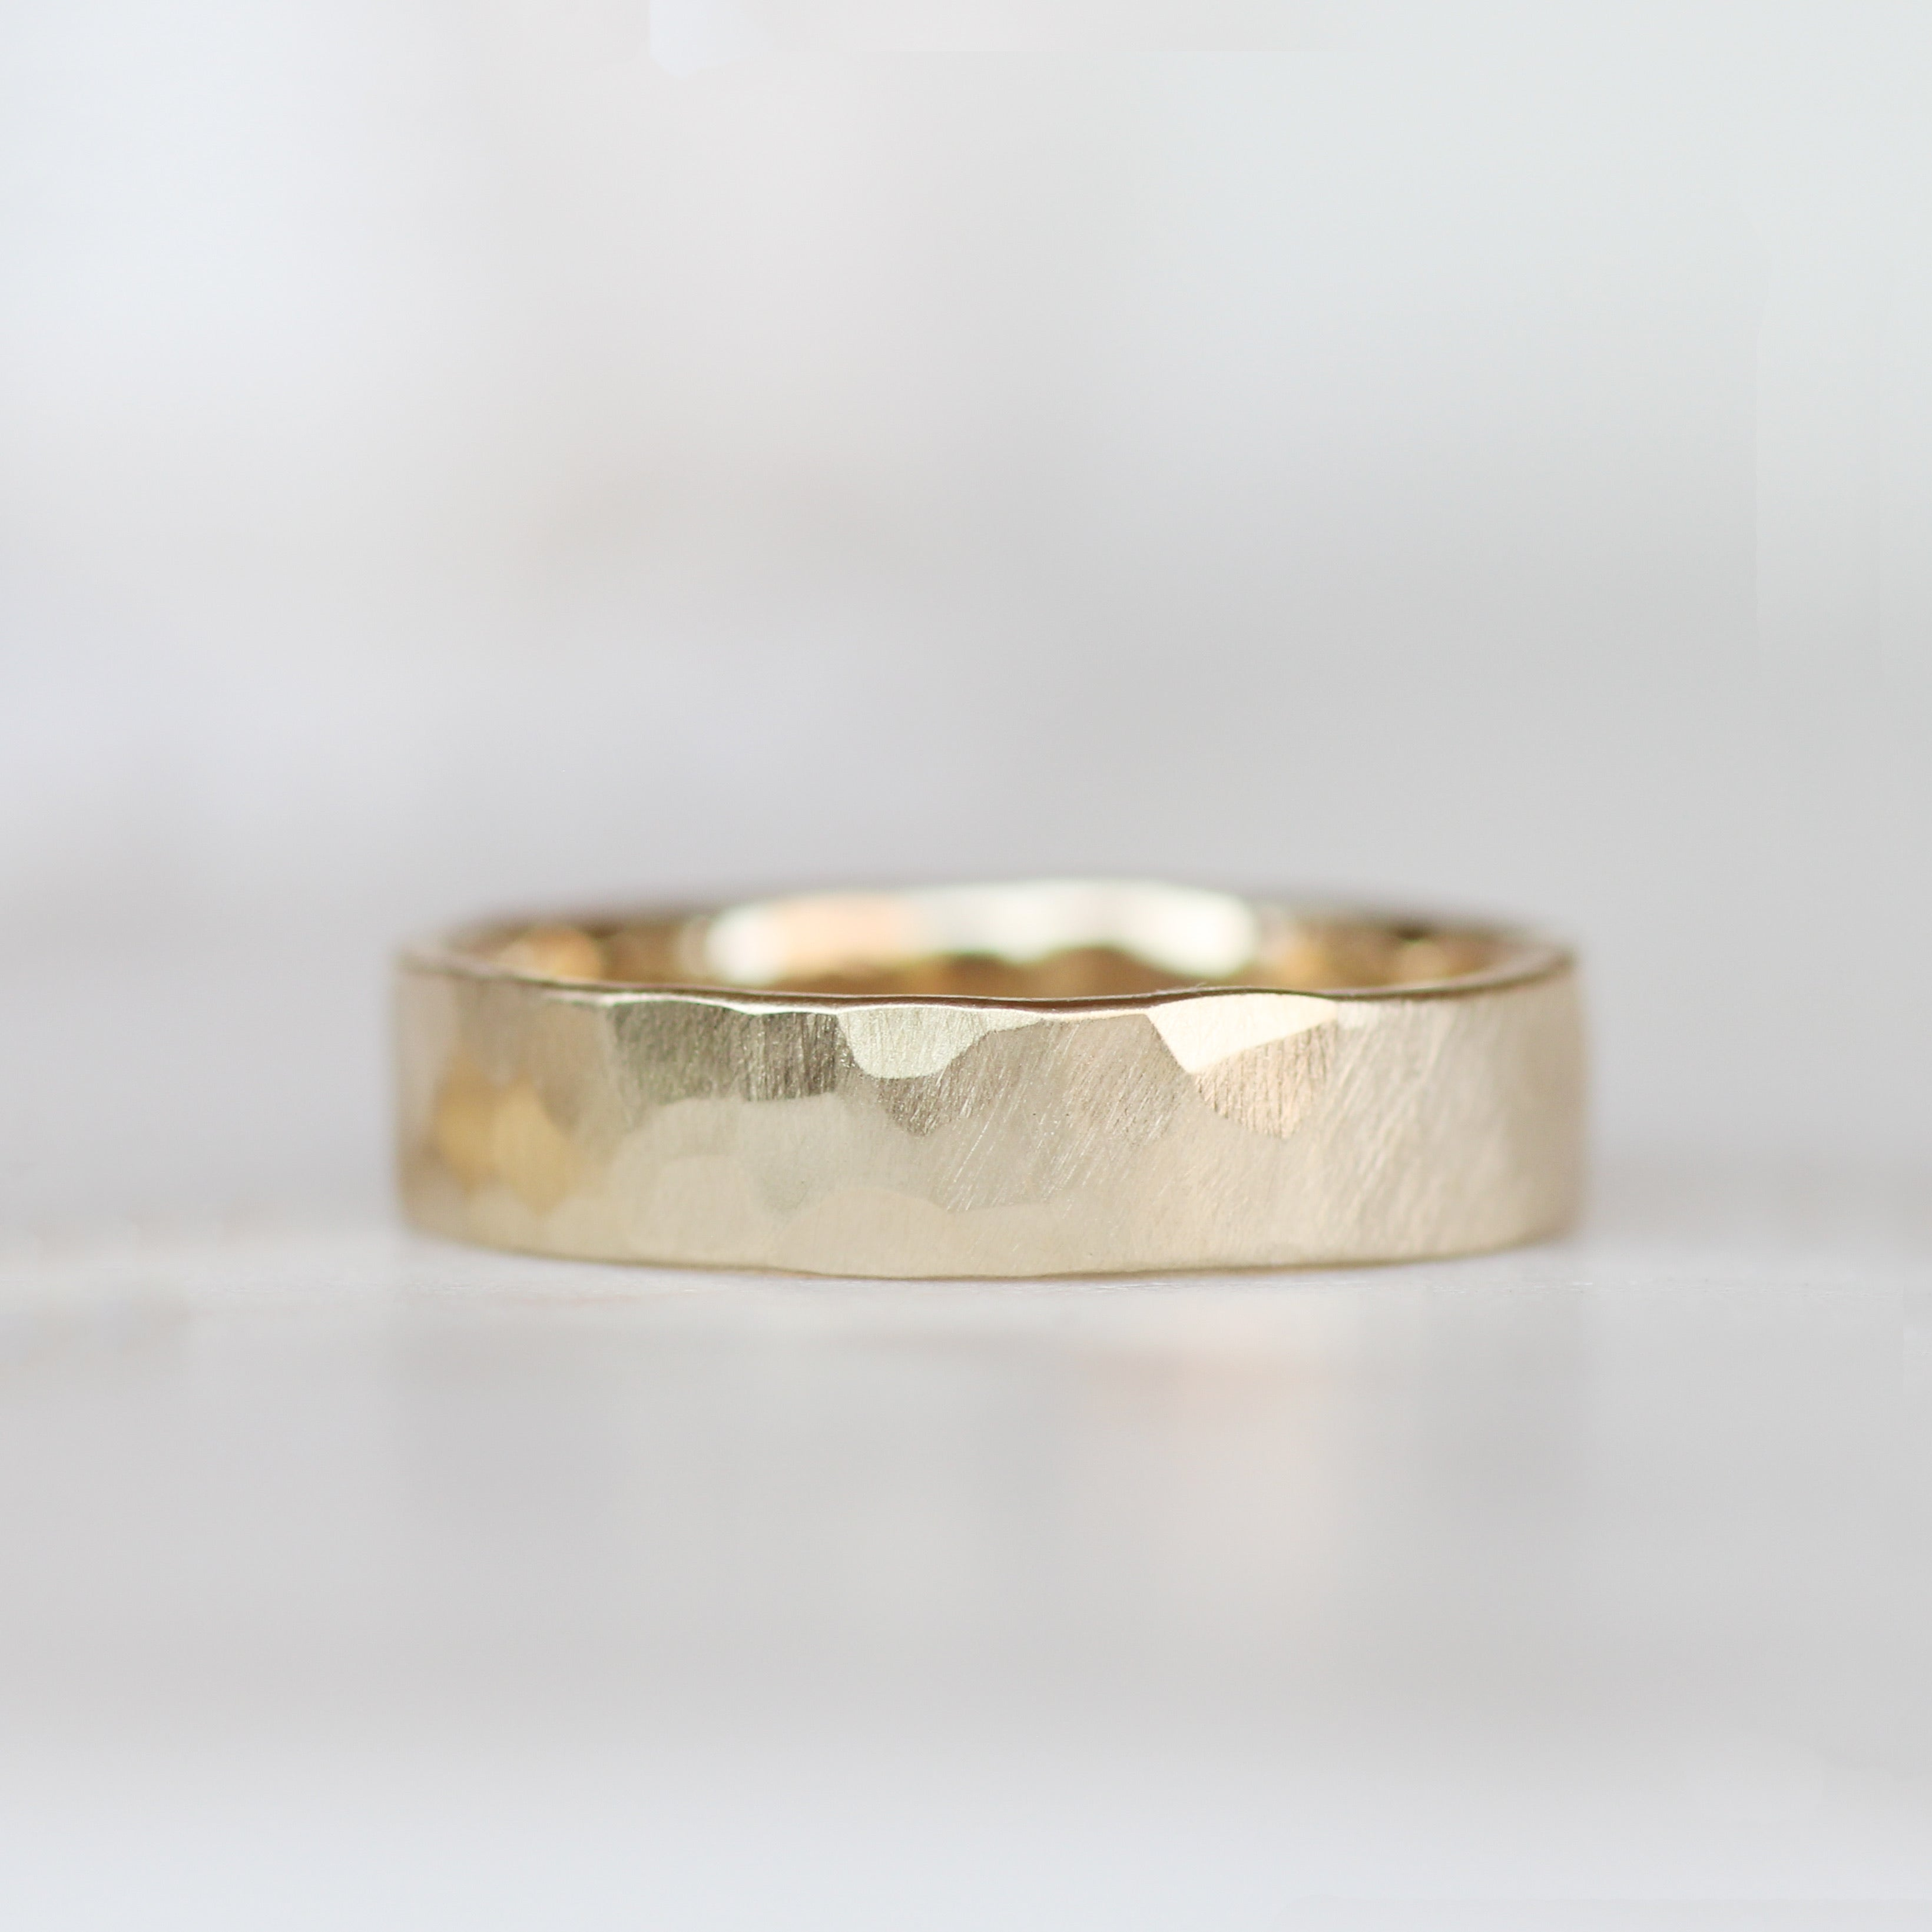 Hammered Wedding Band Ring - 4mm 5mm 6mm - Unisex